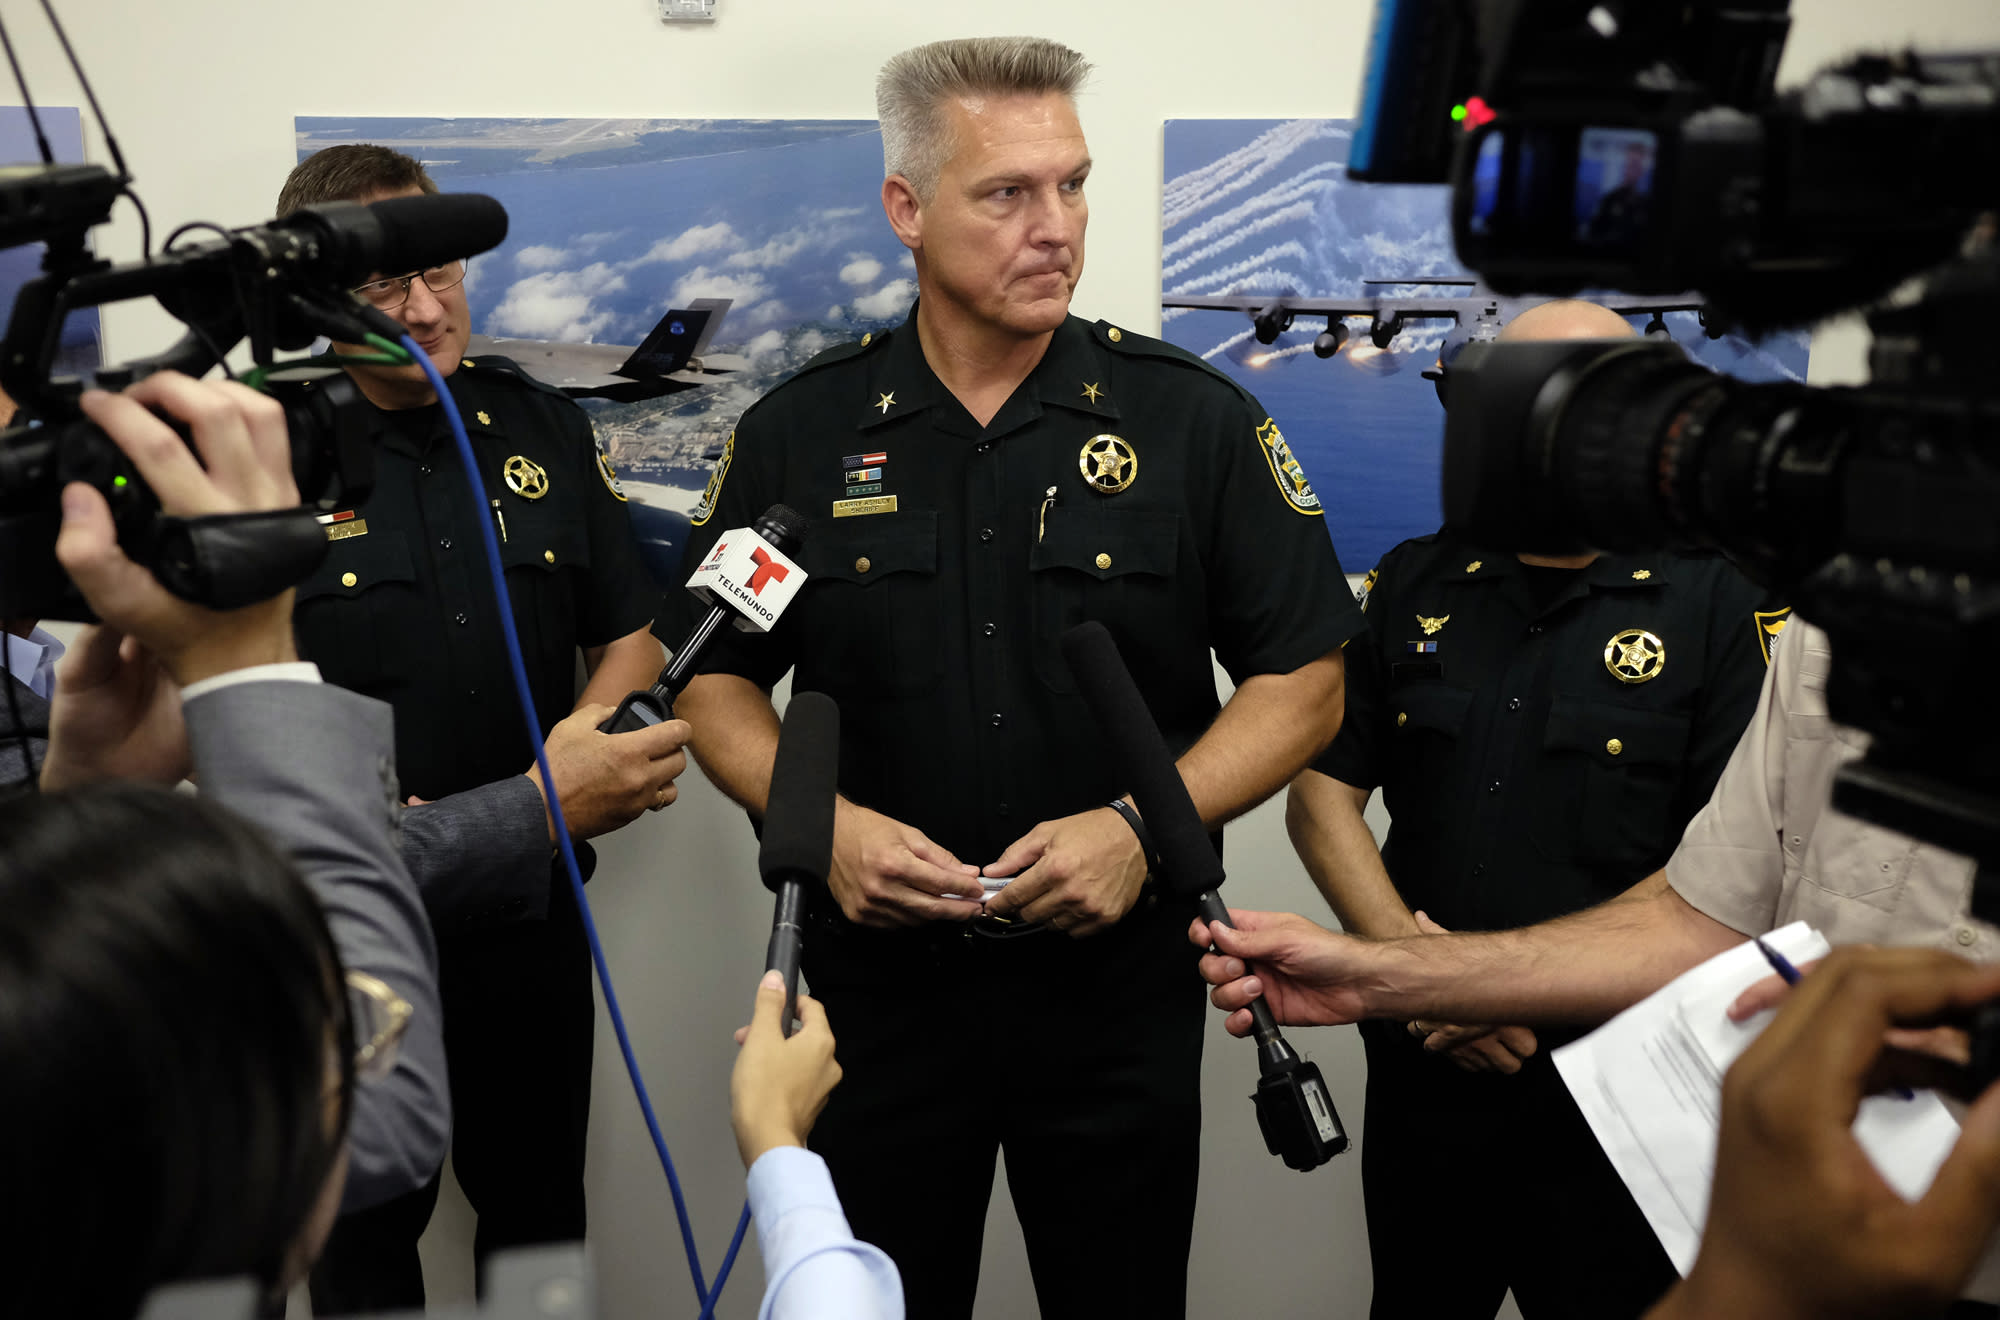 Okaloosa County, Fla.,Sheriff Larry Ashley fields questions from the media after Florida Gov. Ron DeSantis signed the Sanctuary City bill, Friday, June 14, 2019 at the Okaloosa County Commission Chambers in Shalimar Fla. The bill, signed by DeSantis, requires all law enforcement agencies in Florida to cooperate with federal immigration authorities. (Michael Snyder/Northwest Florida Daily News via AP)